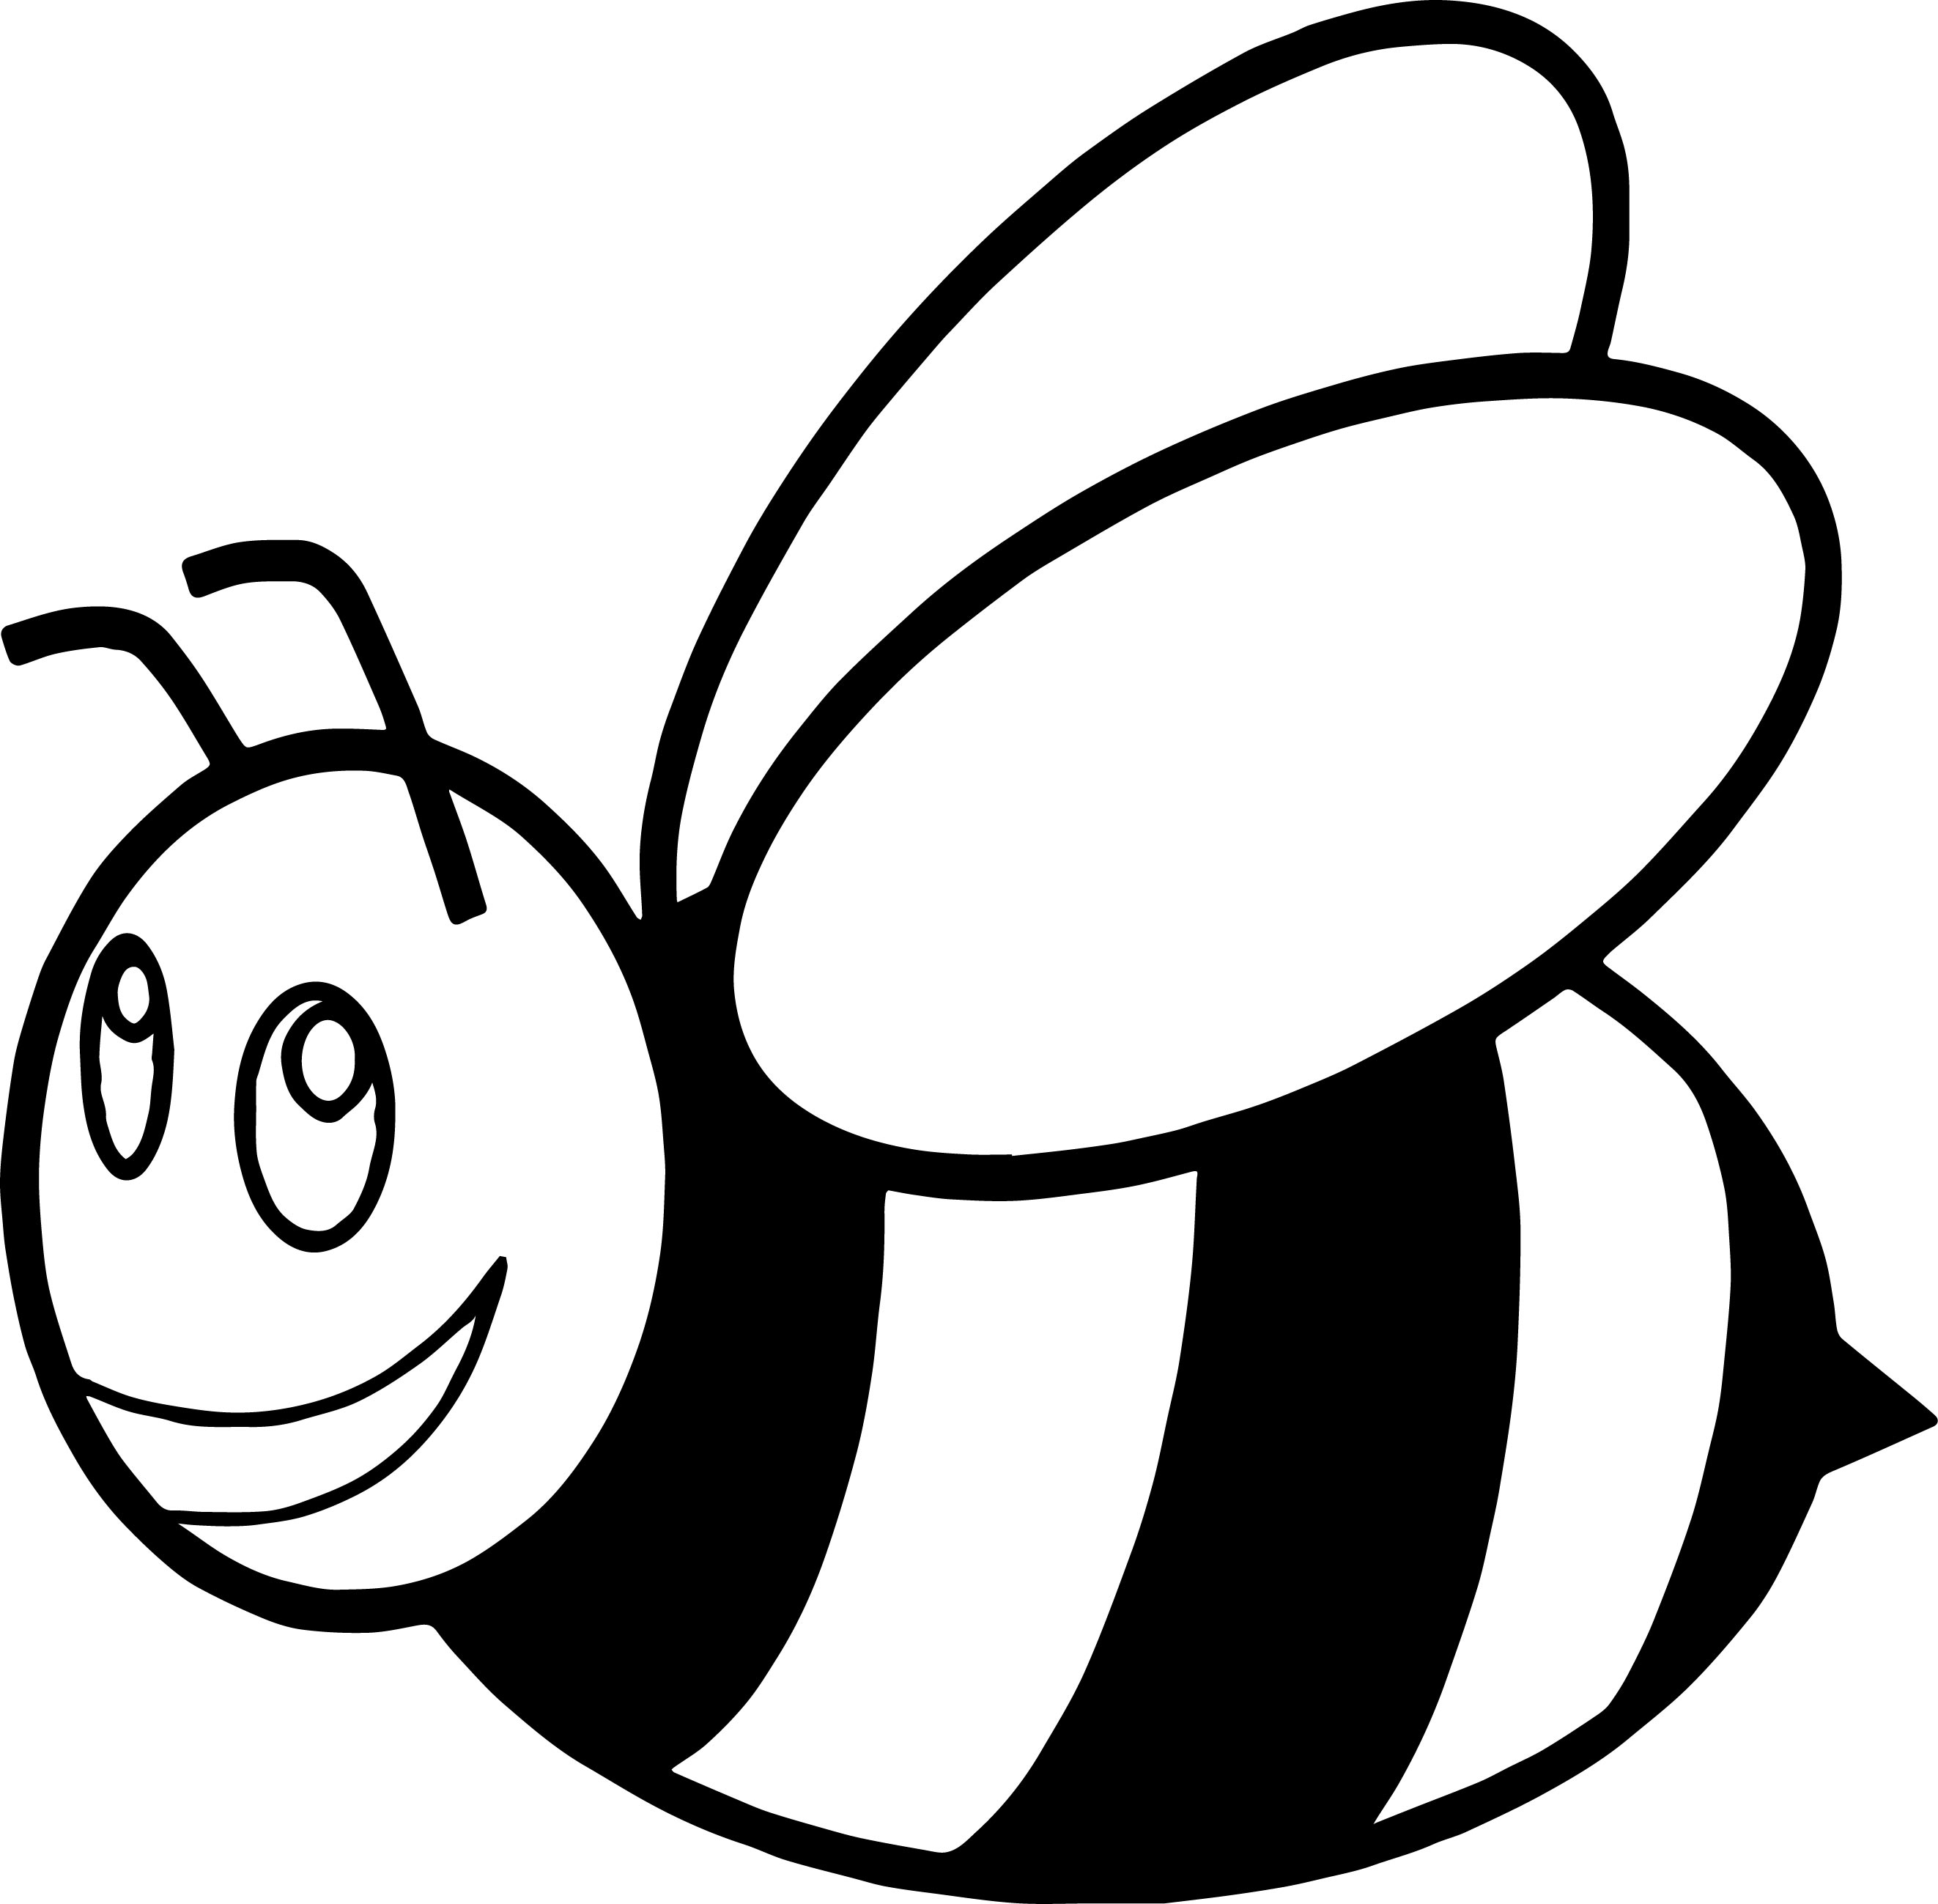 2645x2598 Cute Cartoon Bumble Bee Rubber Coaster Coloring Page Wecoloringpage